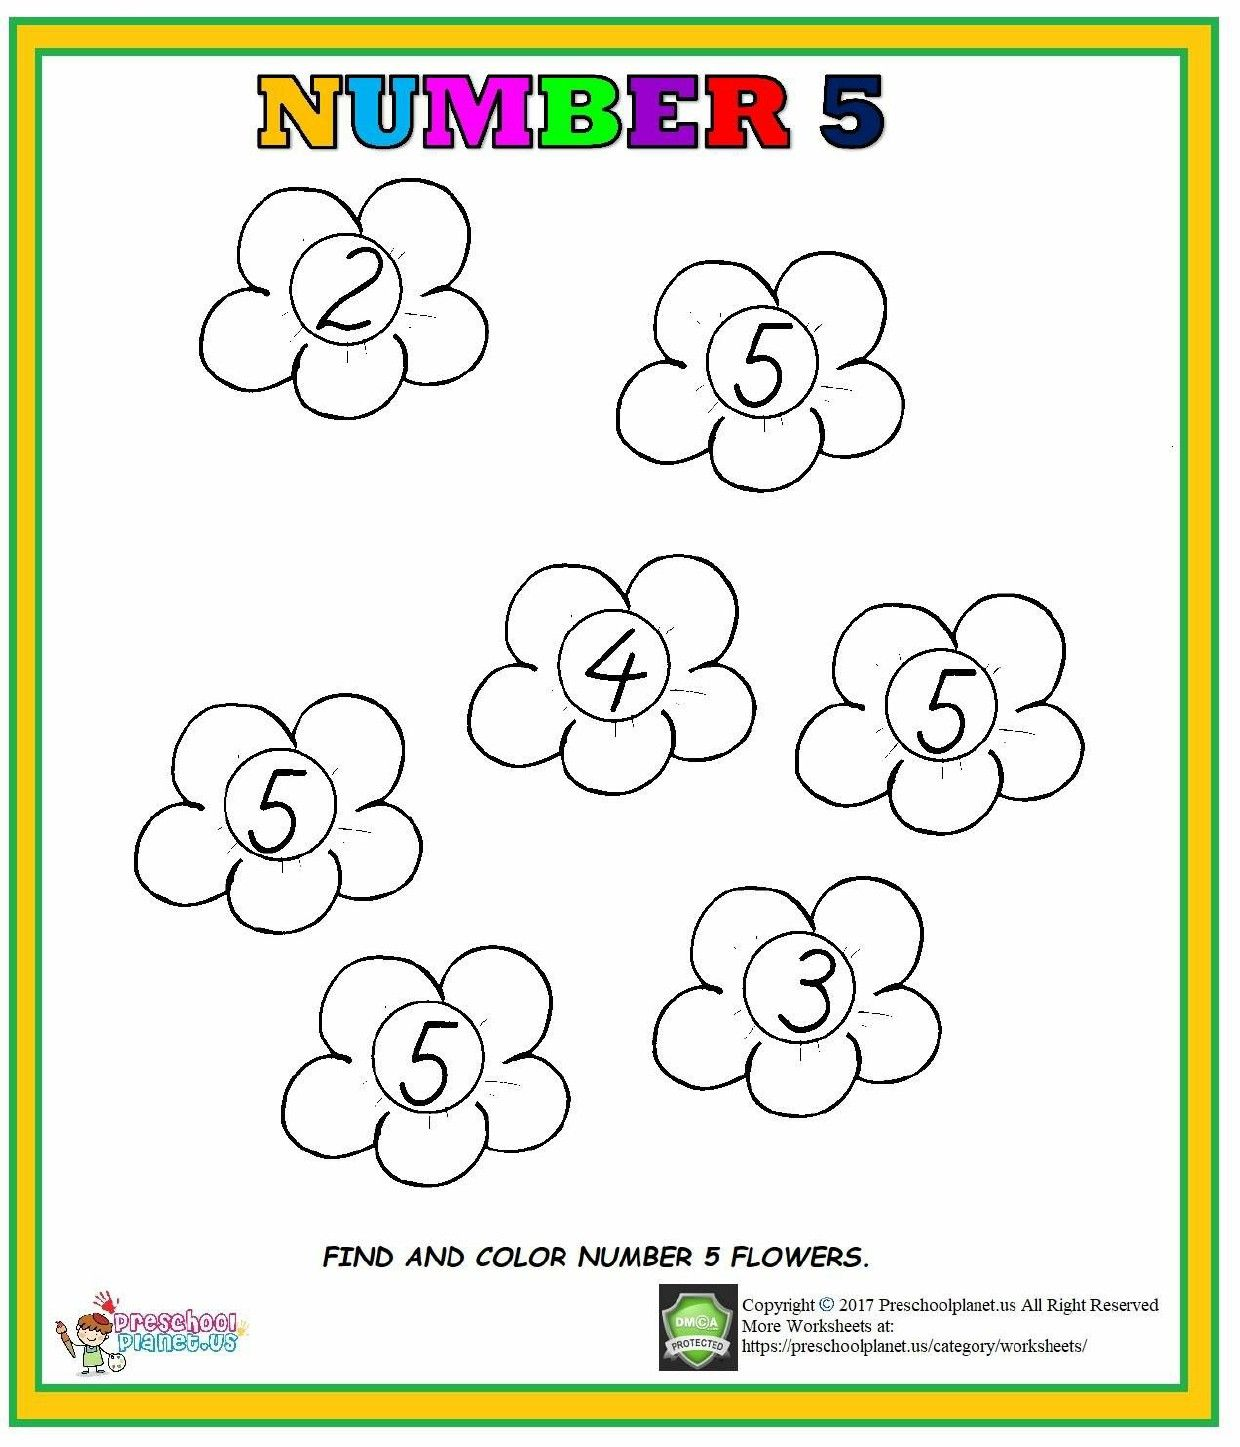 Number 5 Worksheet For Preschool Kindergarten Goruntuler